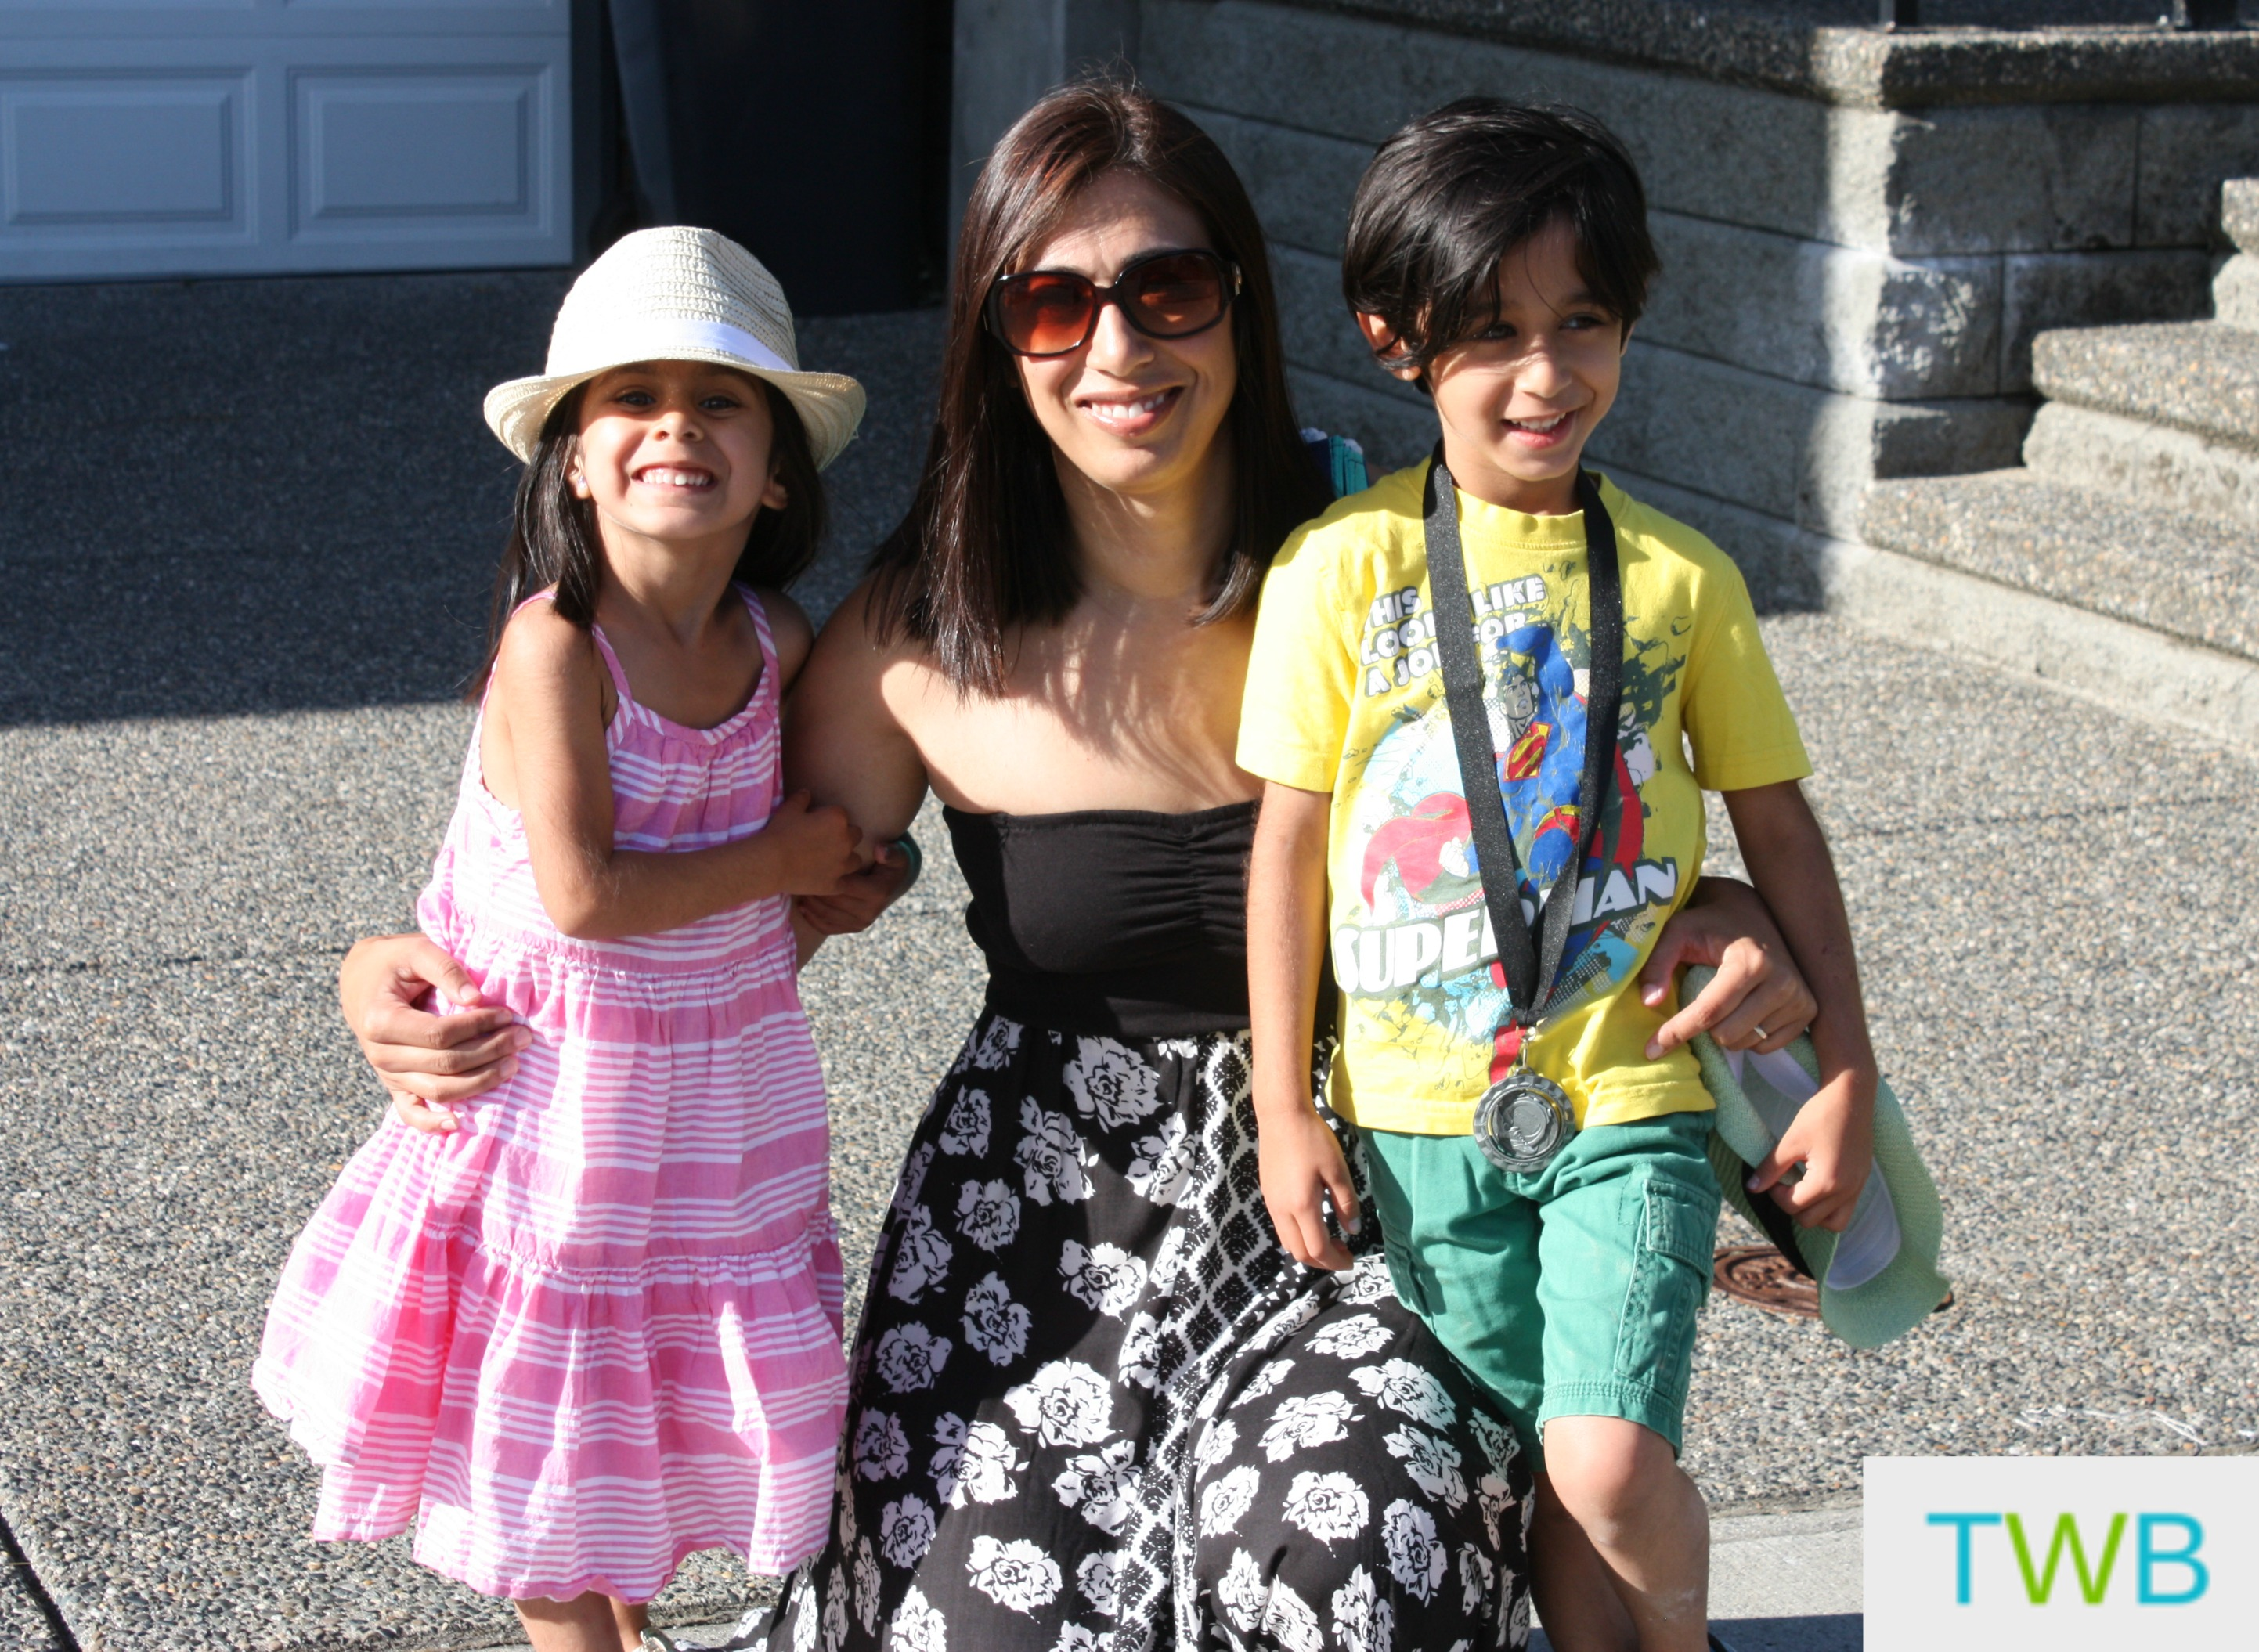 #freshlydressed with the kids